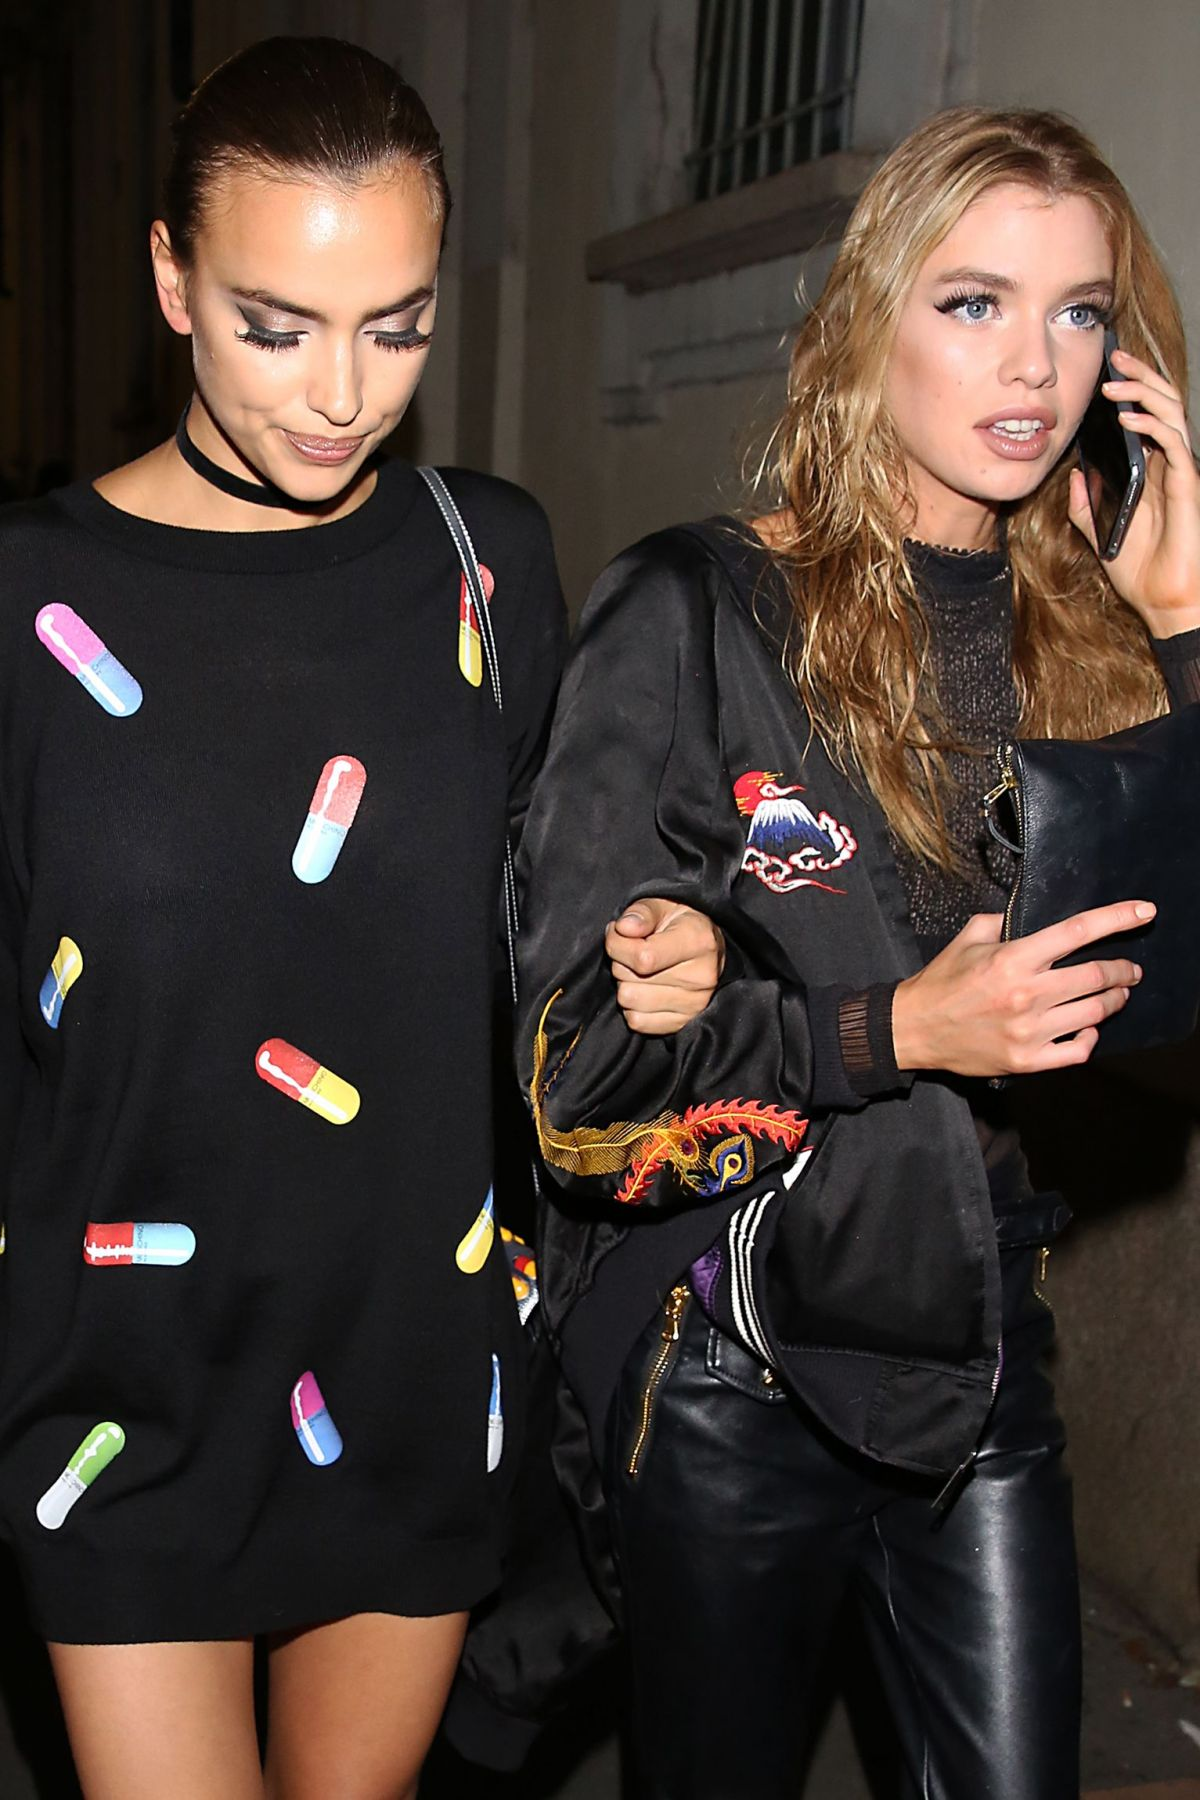 IRINA SHAYK and STELLA MAXWELL Out and About in Milan 09/22/2016